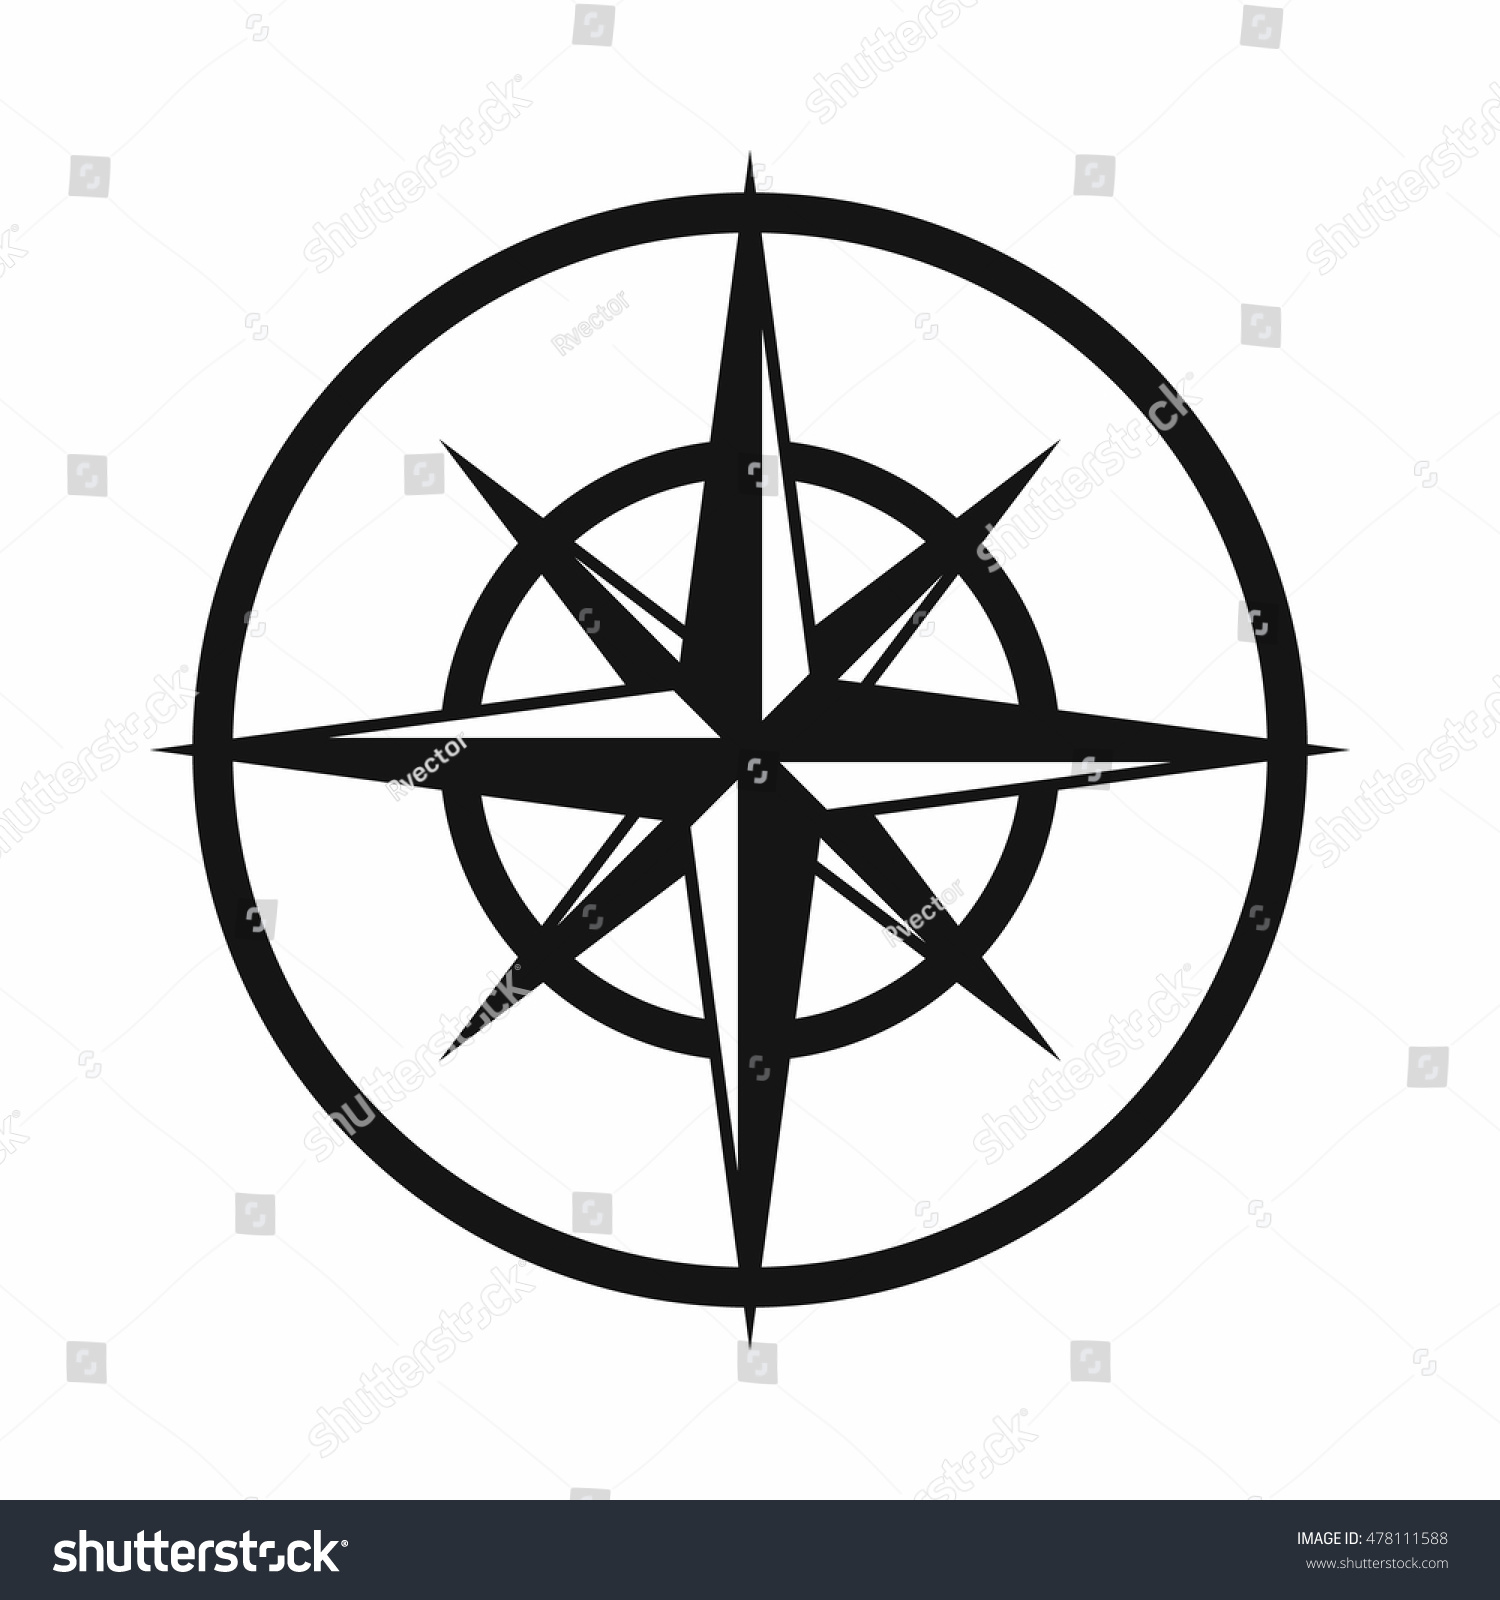 Sign Compass Determine Cardinal Directions Icon Stock